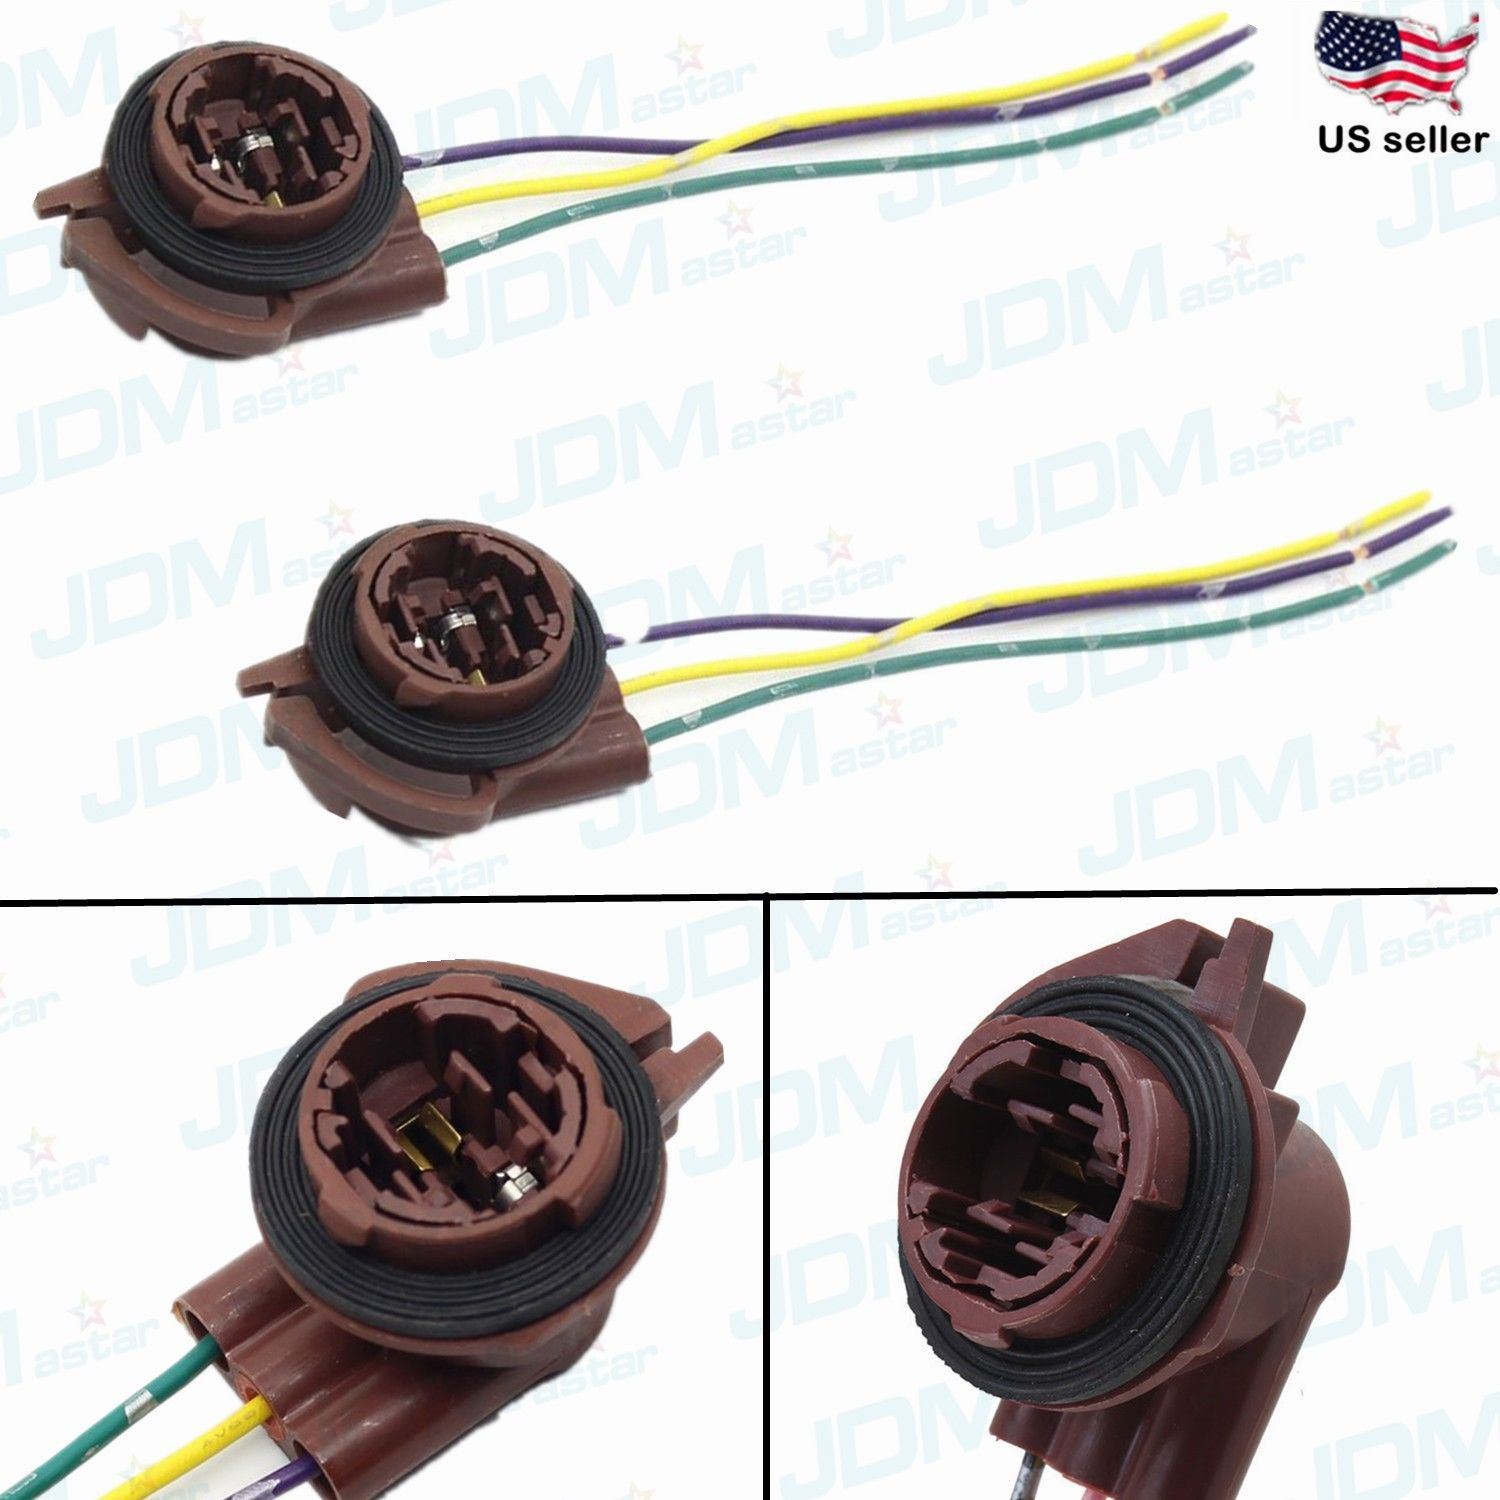 3157A socket harness 1?versionId=luZVsWTmtBB0K6WrOp6TCHwbqxcaKjlO jdm astar 3157 4157na bulb socket turn signal light harness wire 1986 Toyota 4Runner Wiring Harness at aneh.co